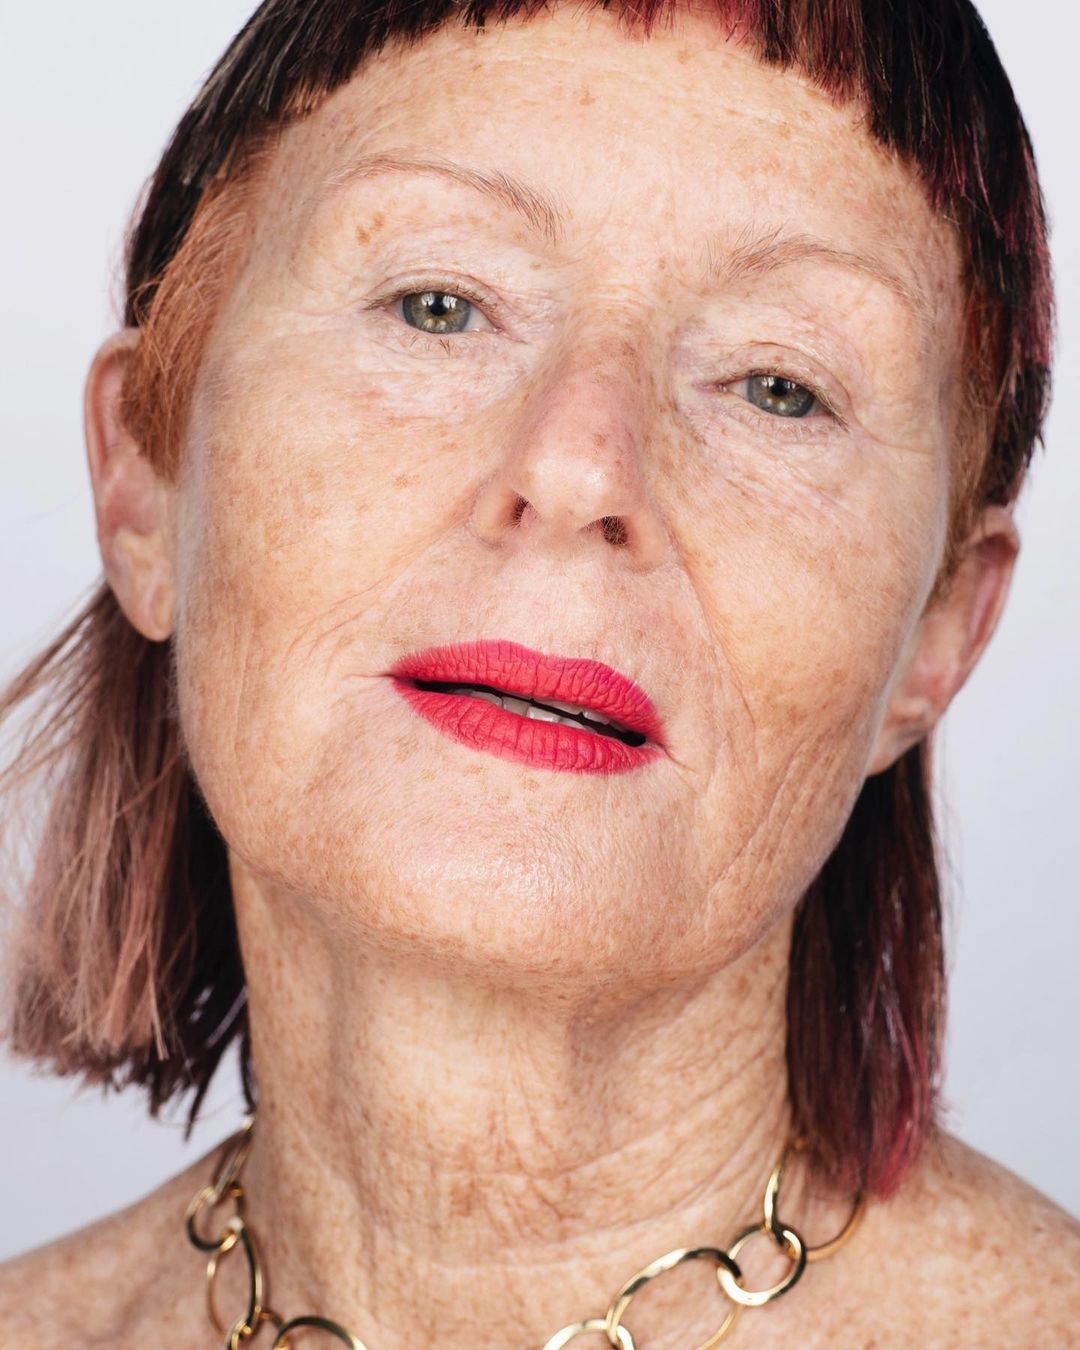 The Strength Behind Positive Aging